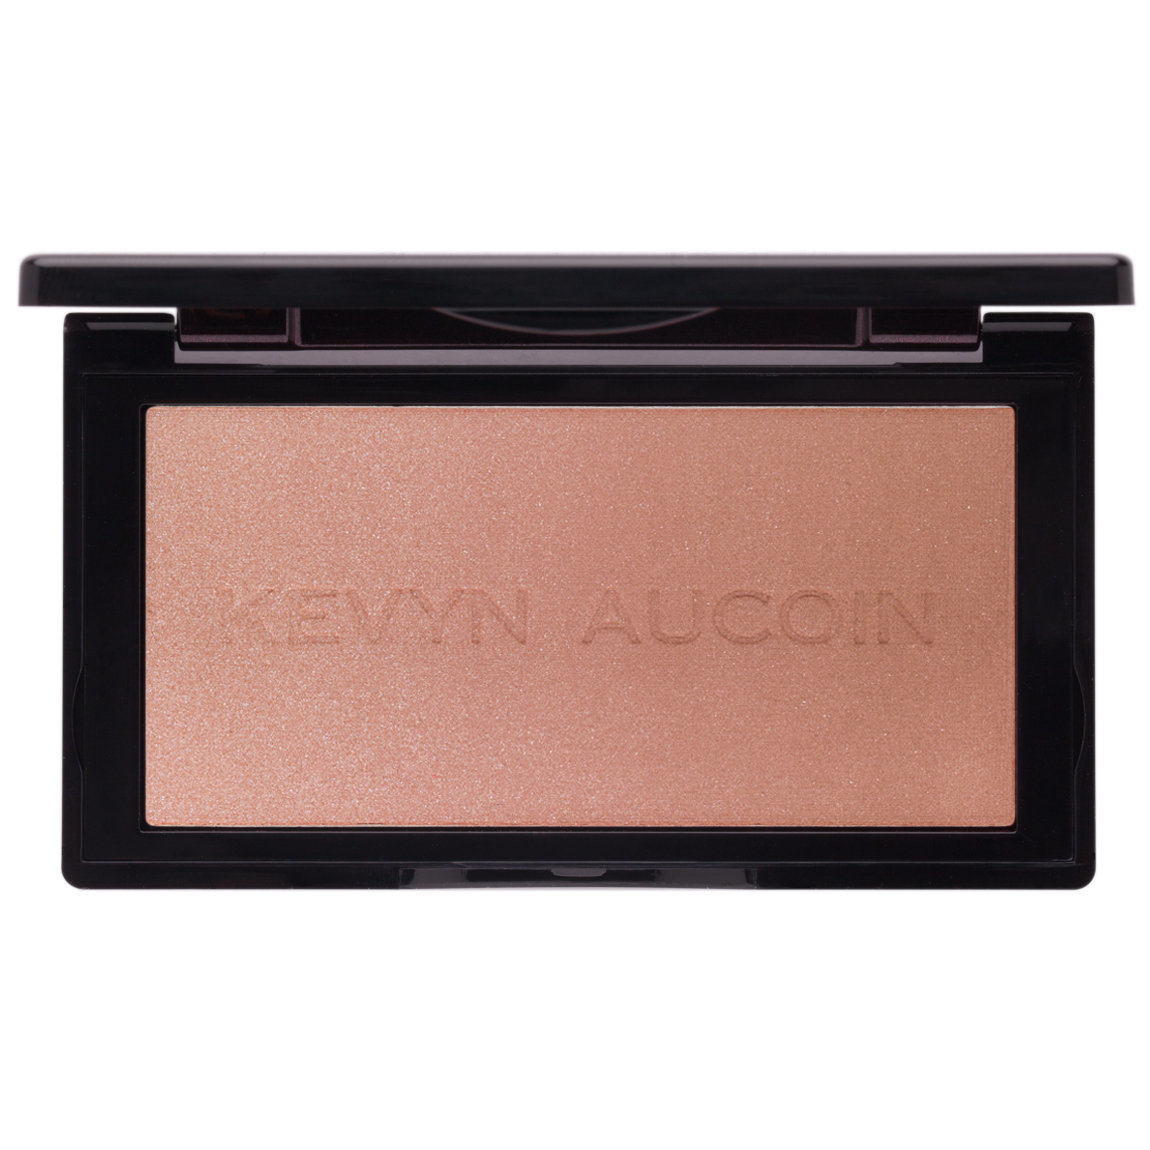 Kevyn Aucoin The Neo-Bronzer Sunrise Light product smear.